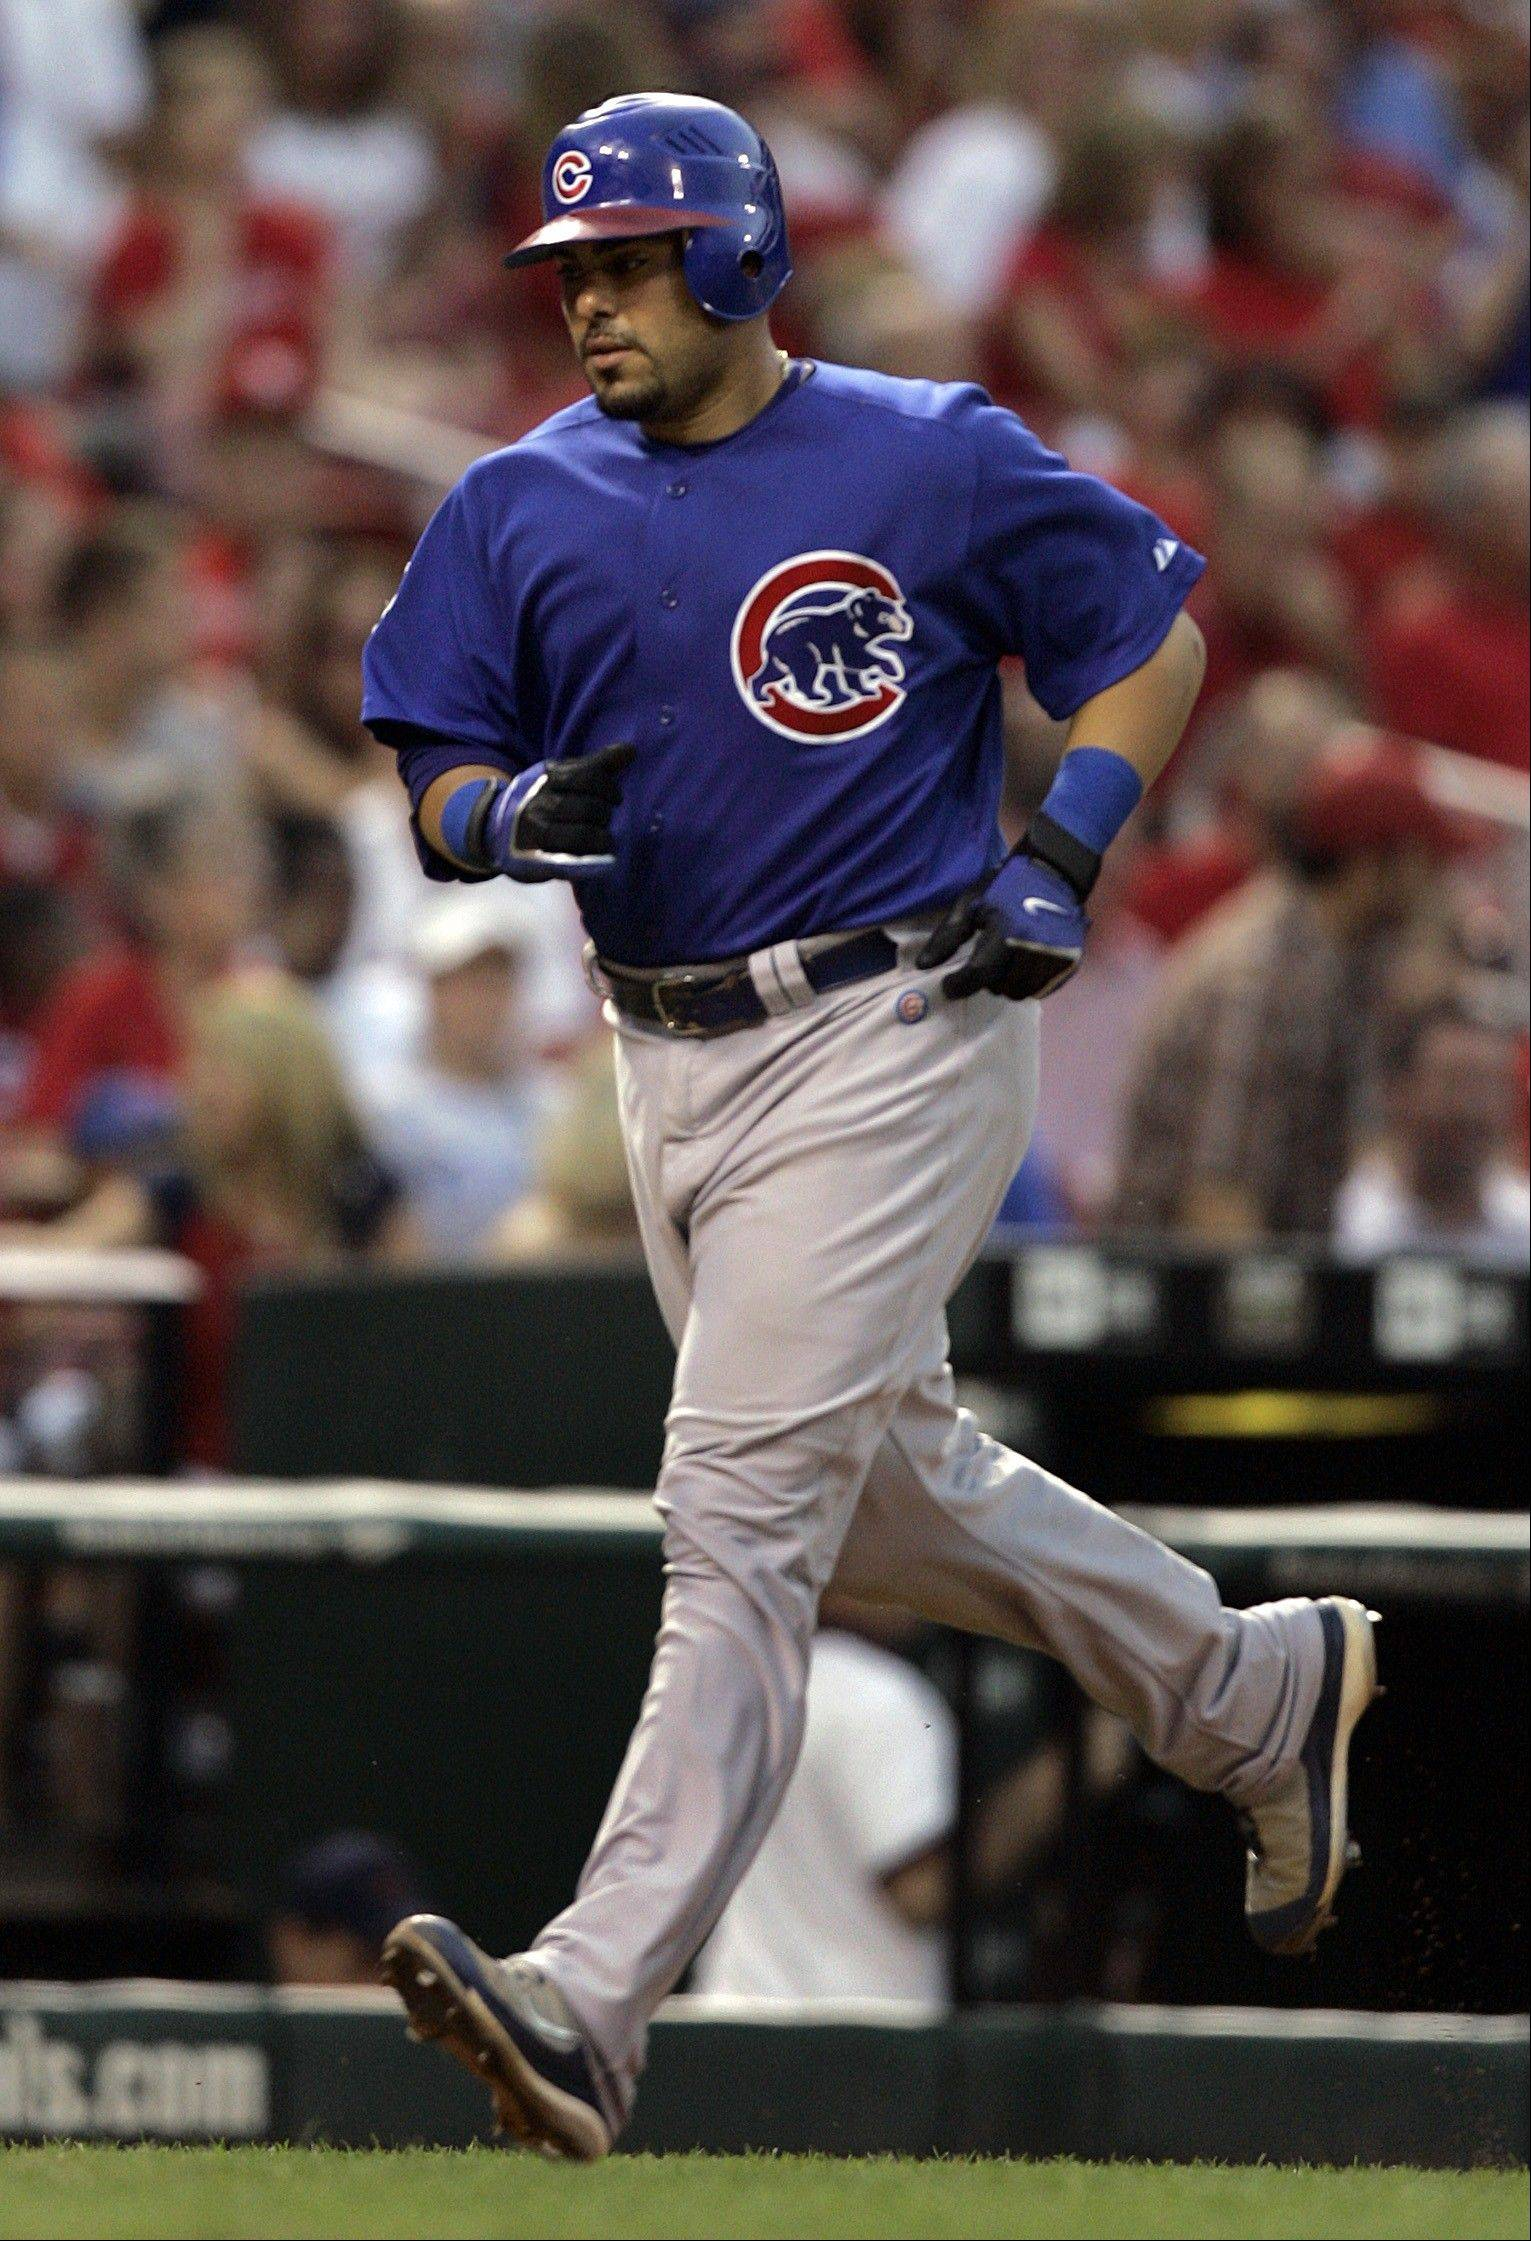 Chicago Cubs' Geovany Soto was traded mid-game yesterday, along with two other Cubs. How about Ryan Dempster? Not yesterday, but maybe today, the trade deadline.